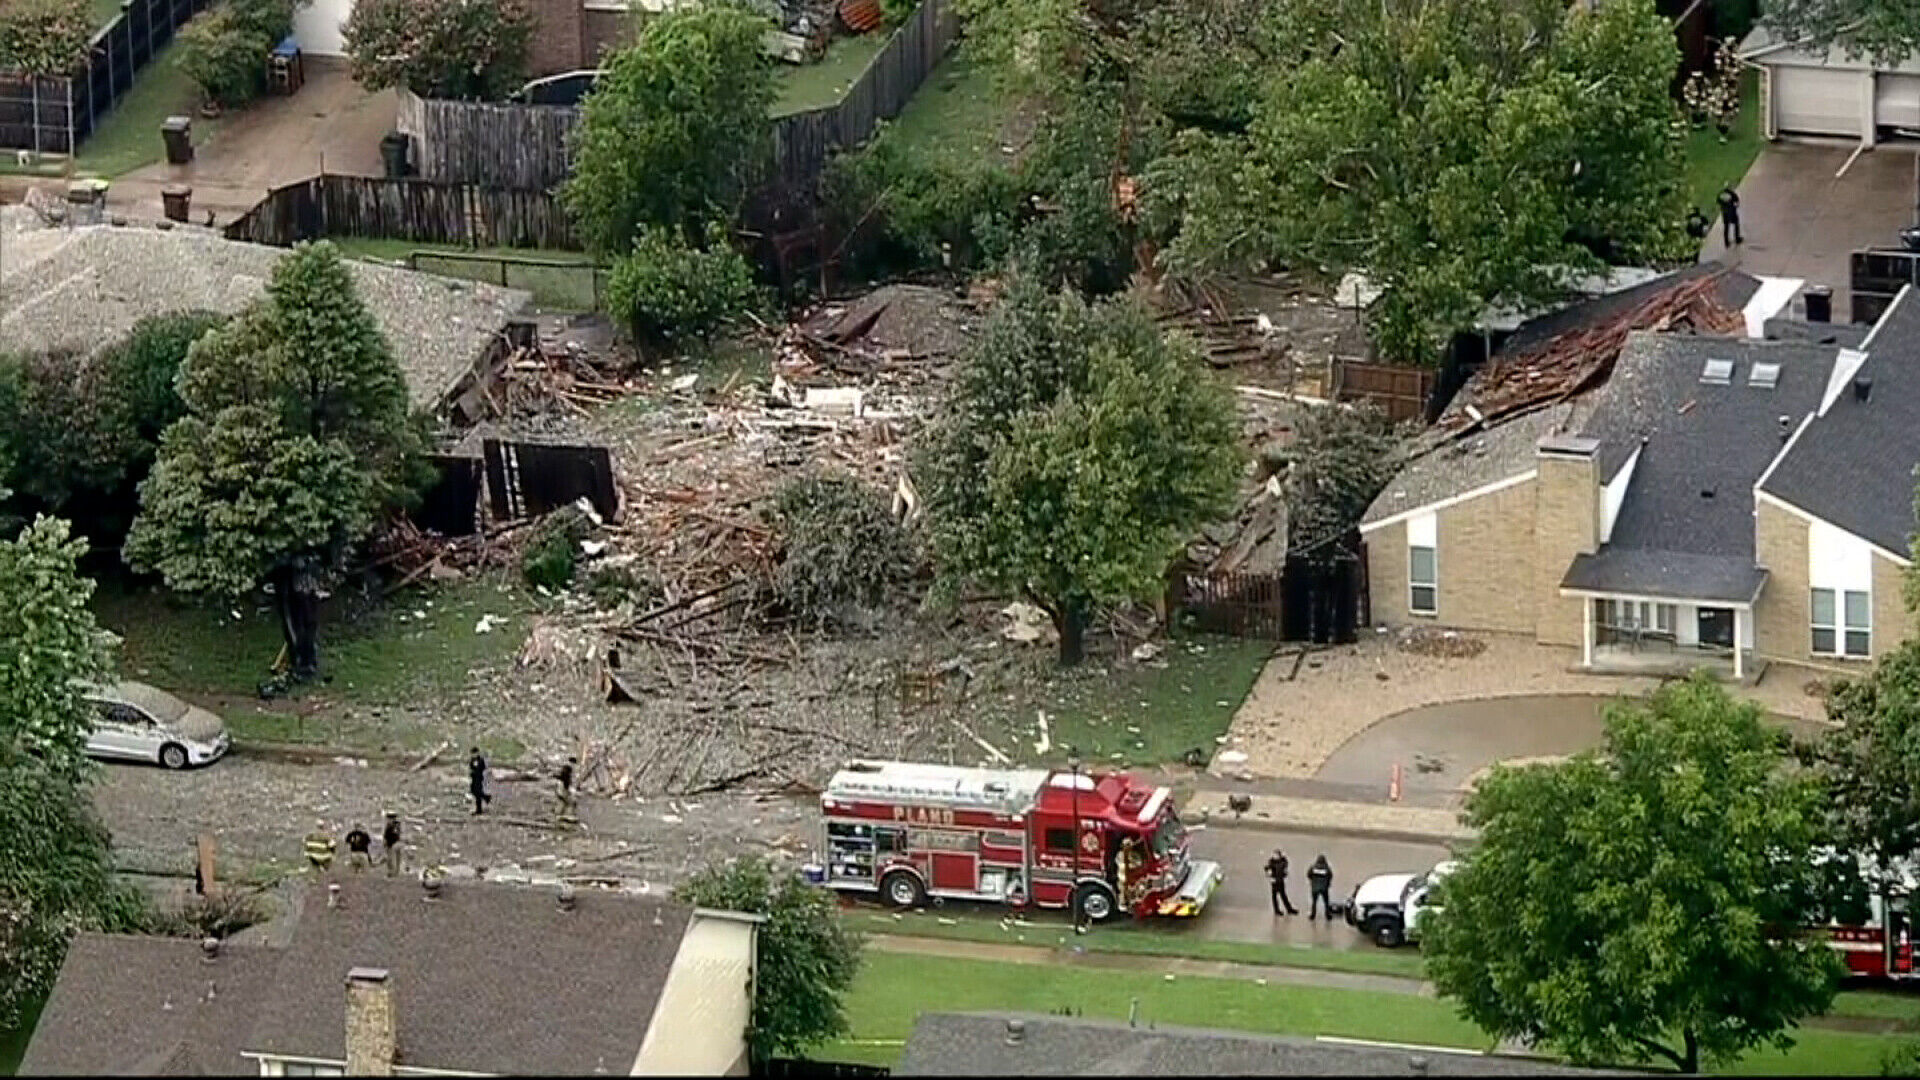 6 injured in a Texas home explosion that damaged 2 other houses 6